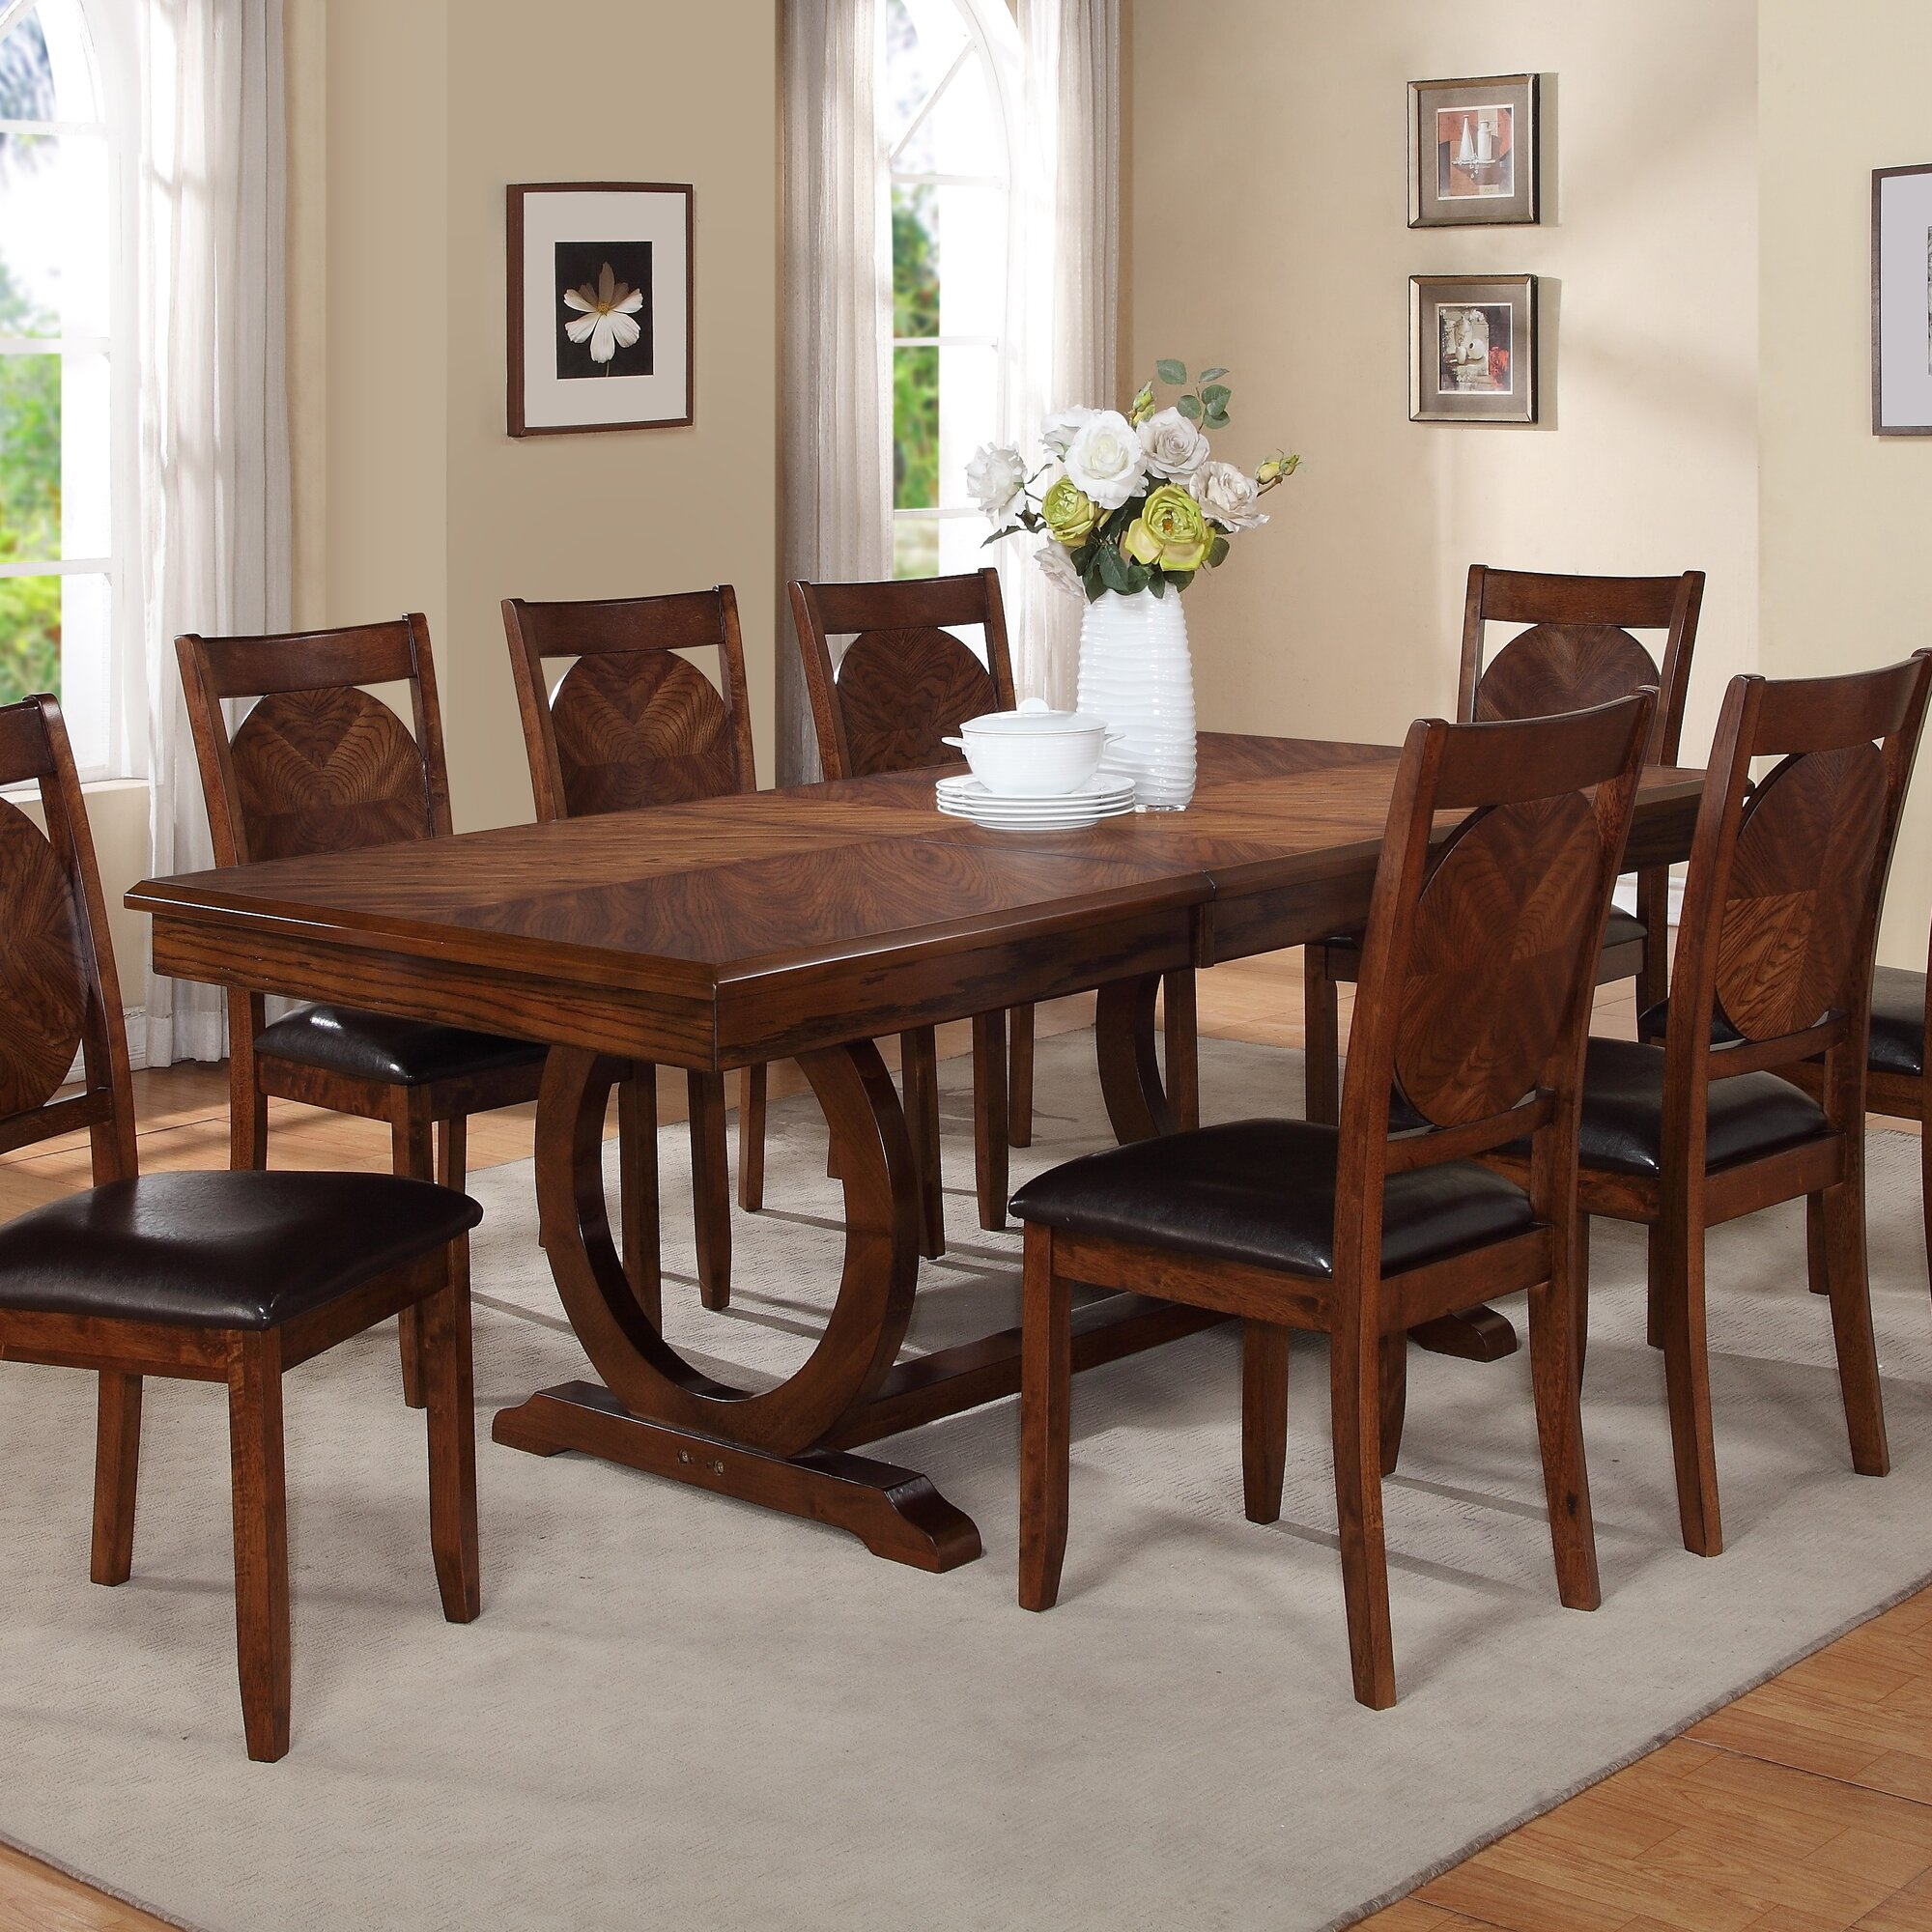 Extendable Dining Room Table World Menagerie Kapoor Extendable Dining Table & Reviews  Wayfair